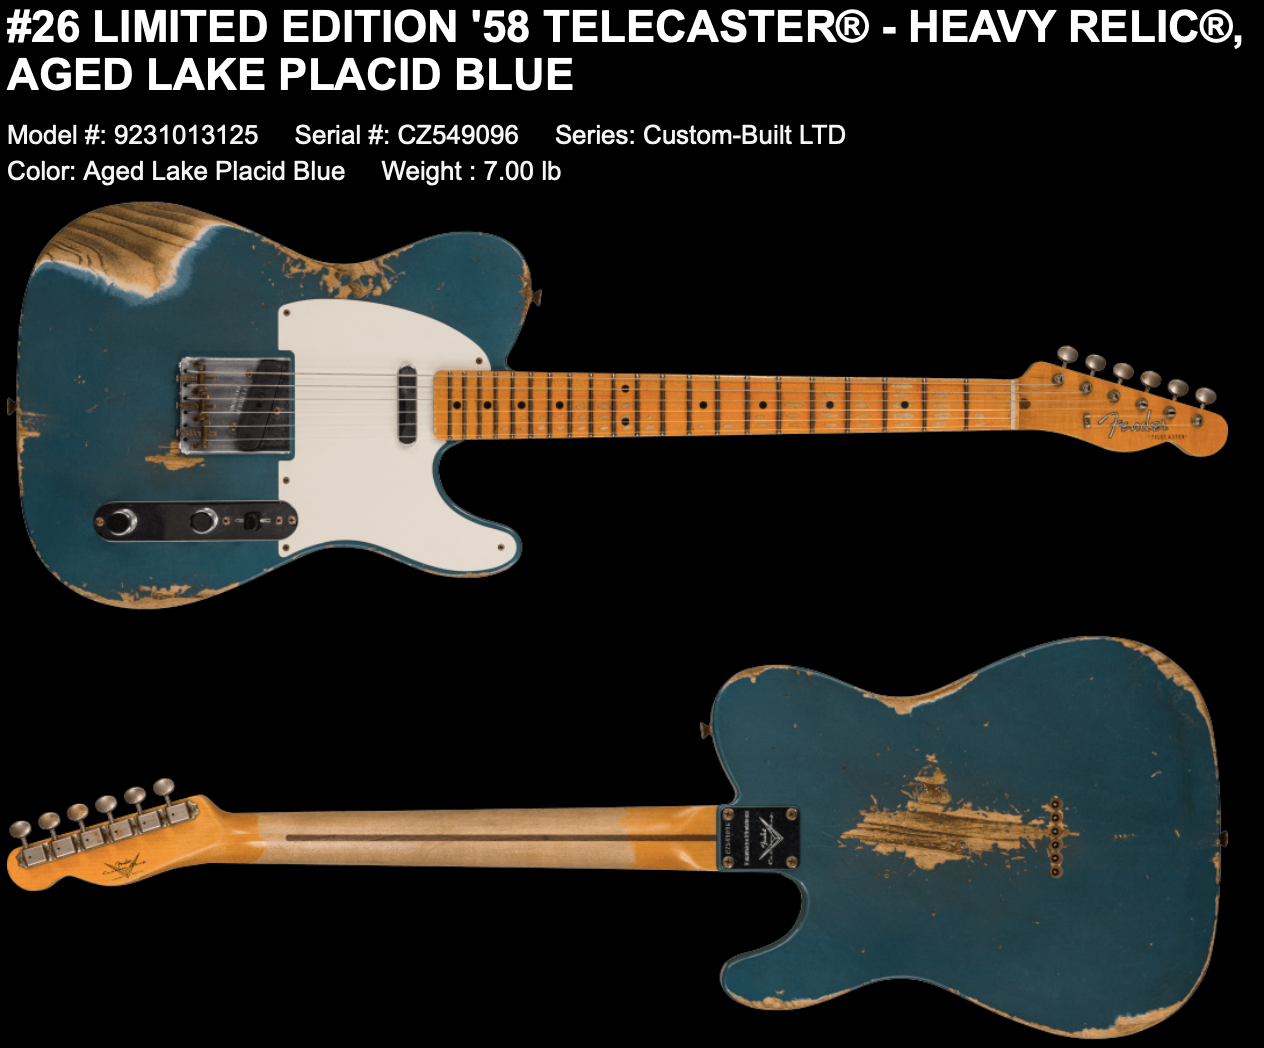 (PRE-ORDER) Fender Custom Shop LIMITED EDITION '58 TELECASTER  HEAVY RELIC In AGED LAKE PLACID BLUE